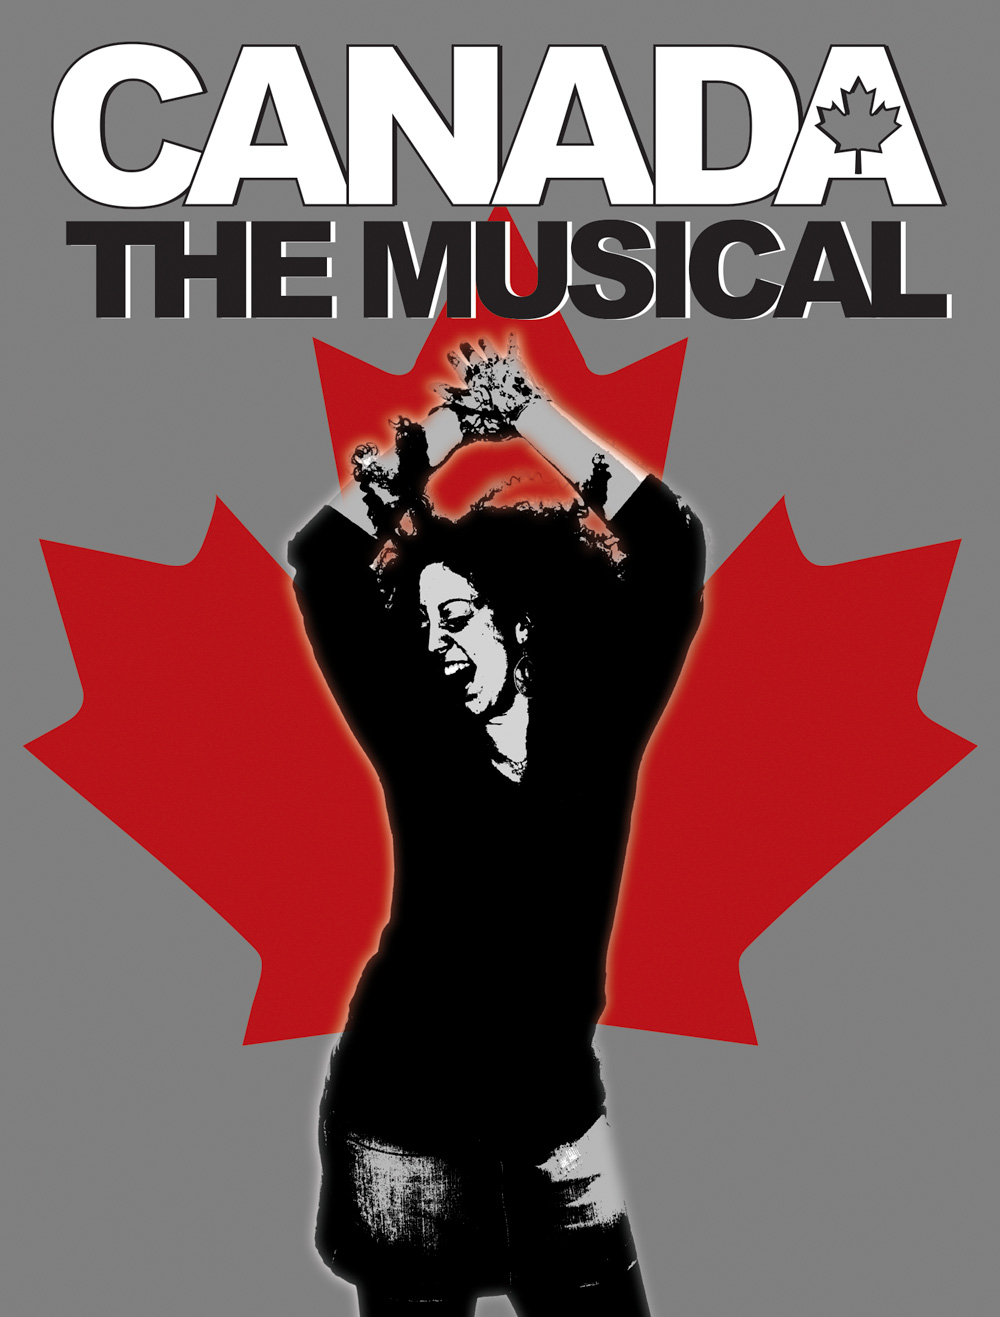 canada-the-musical-vertical2.jpg